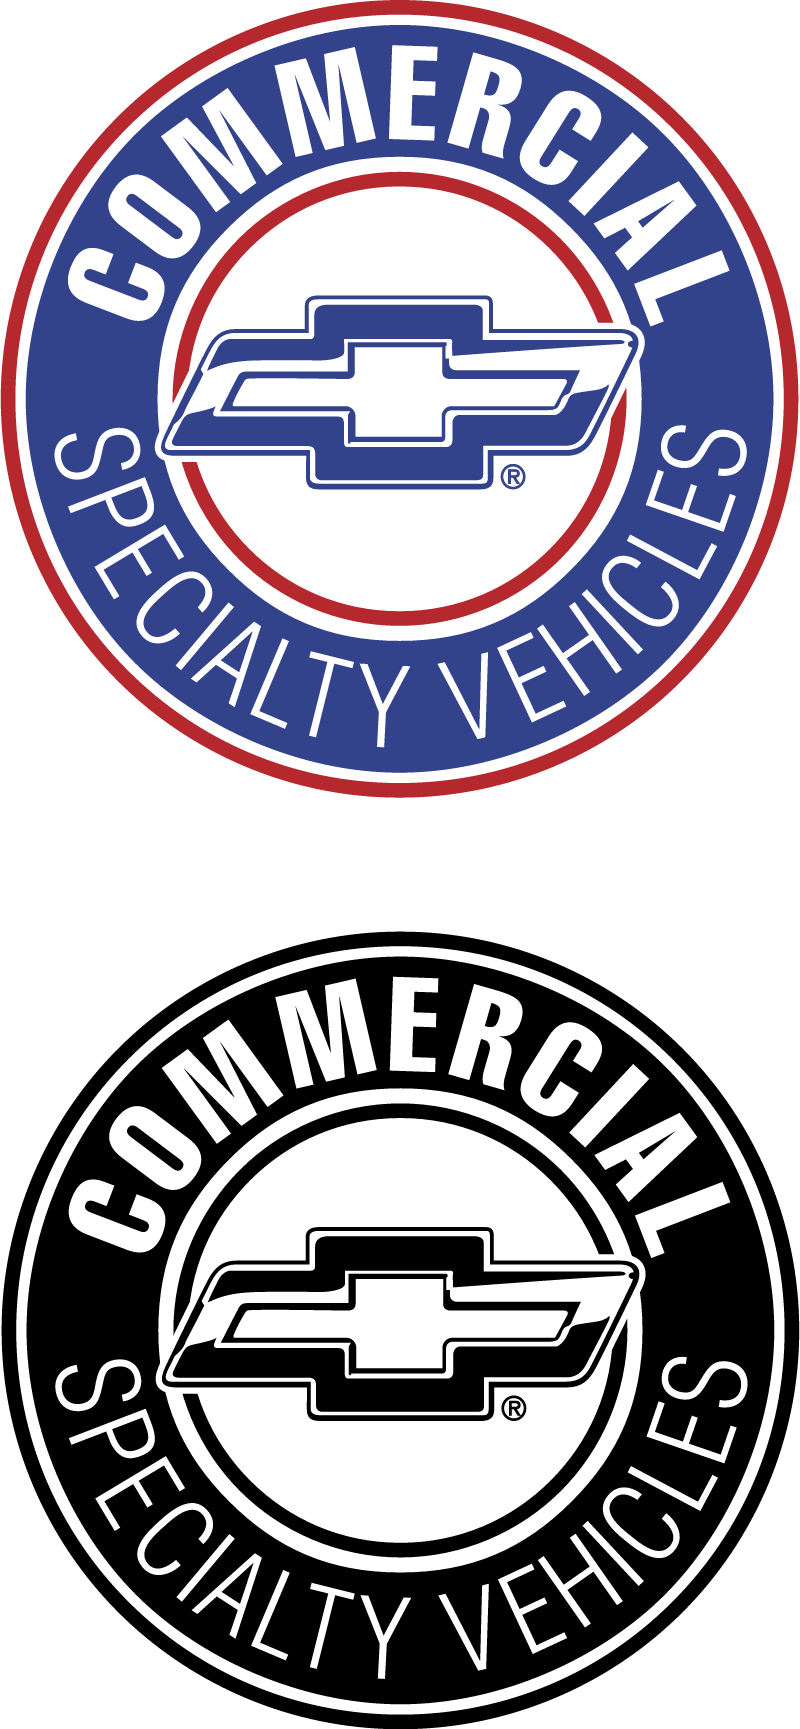 Chevy Specialty Vehicles vector